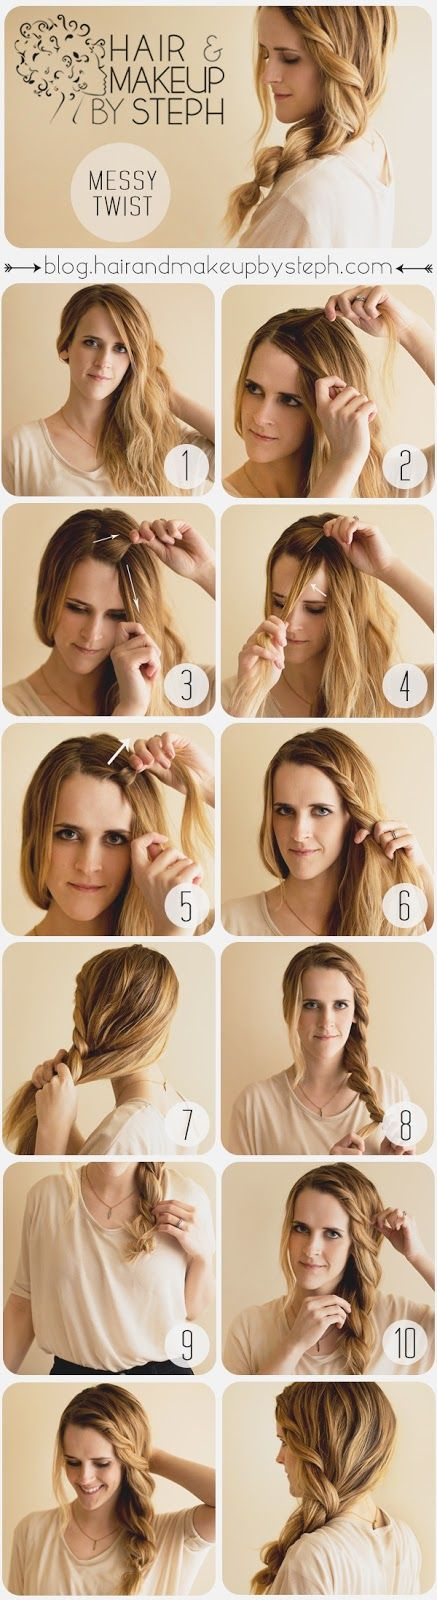 Top 10 Super Fast Hairstyles To Do In Your Car Hair Styles Long